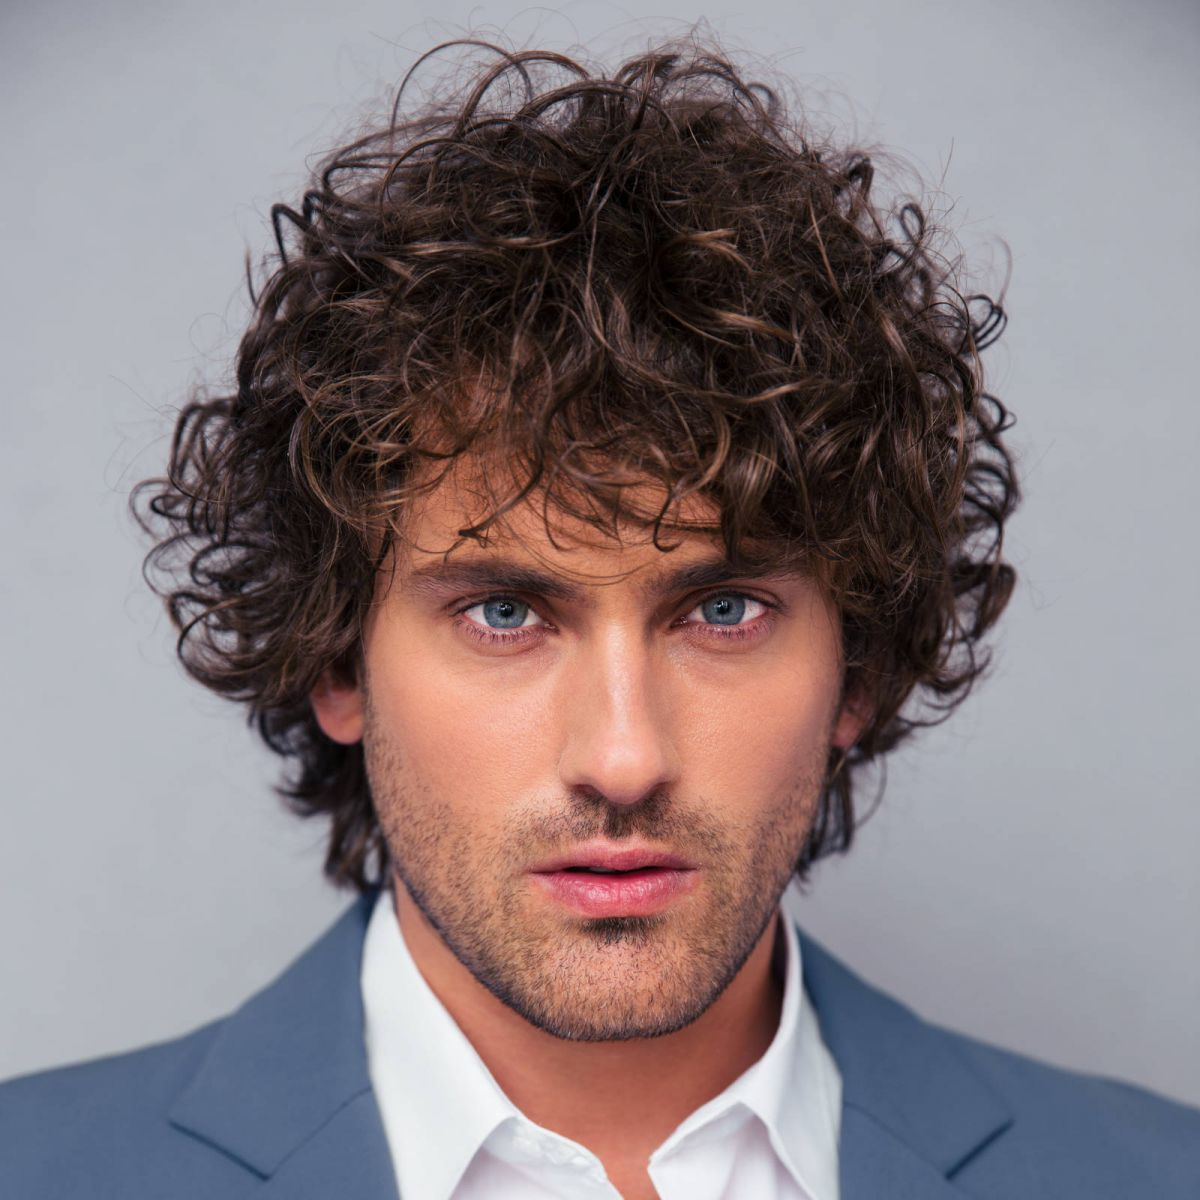 Top of hairstyles for curly hair men